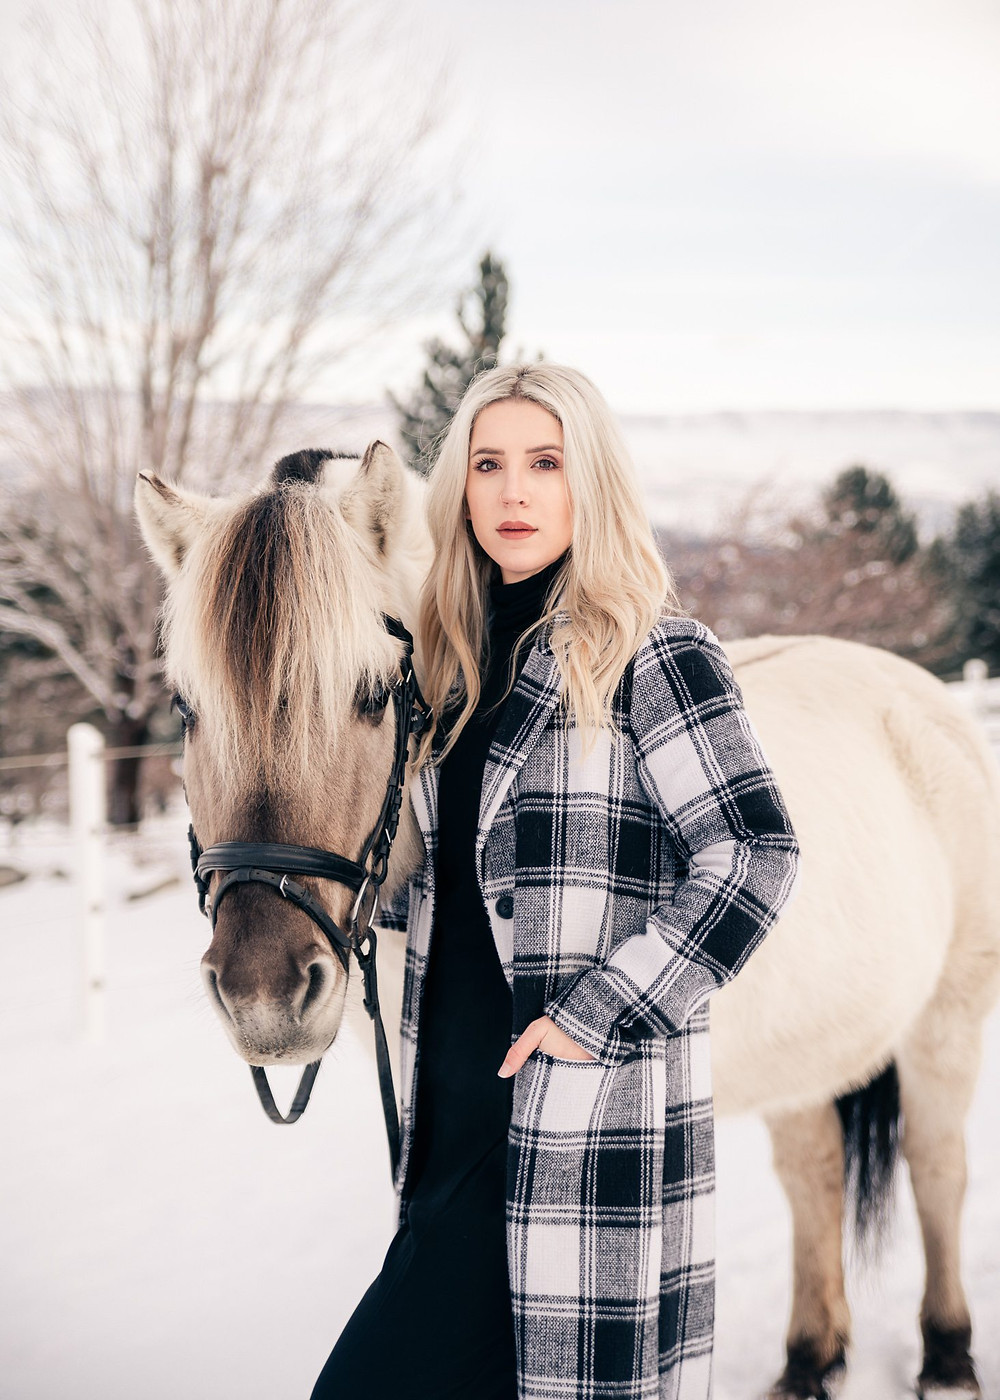 a girl standing next to her Fjord horse, with her hand in her coat pocket